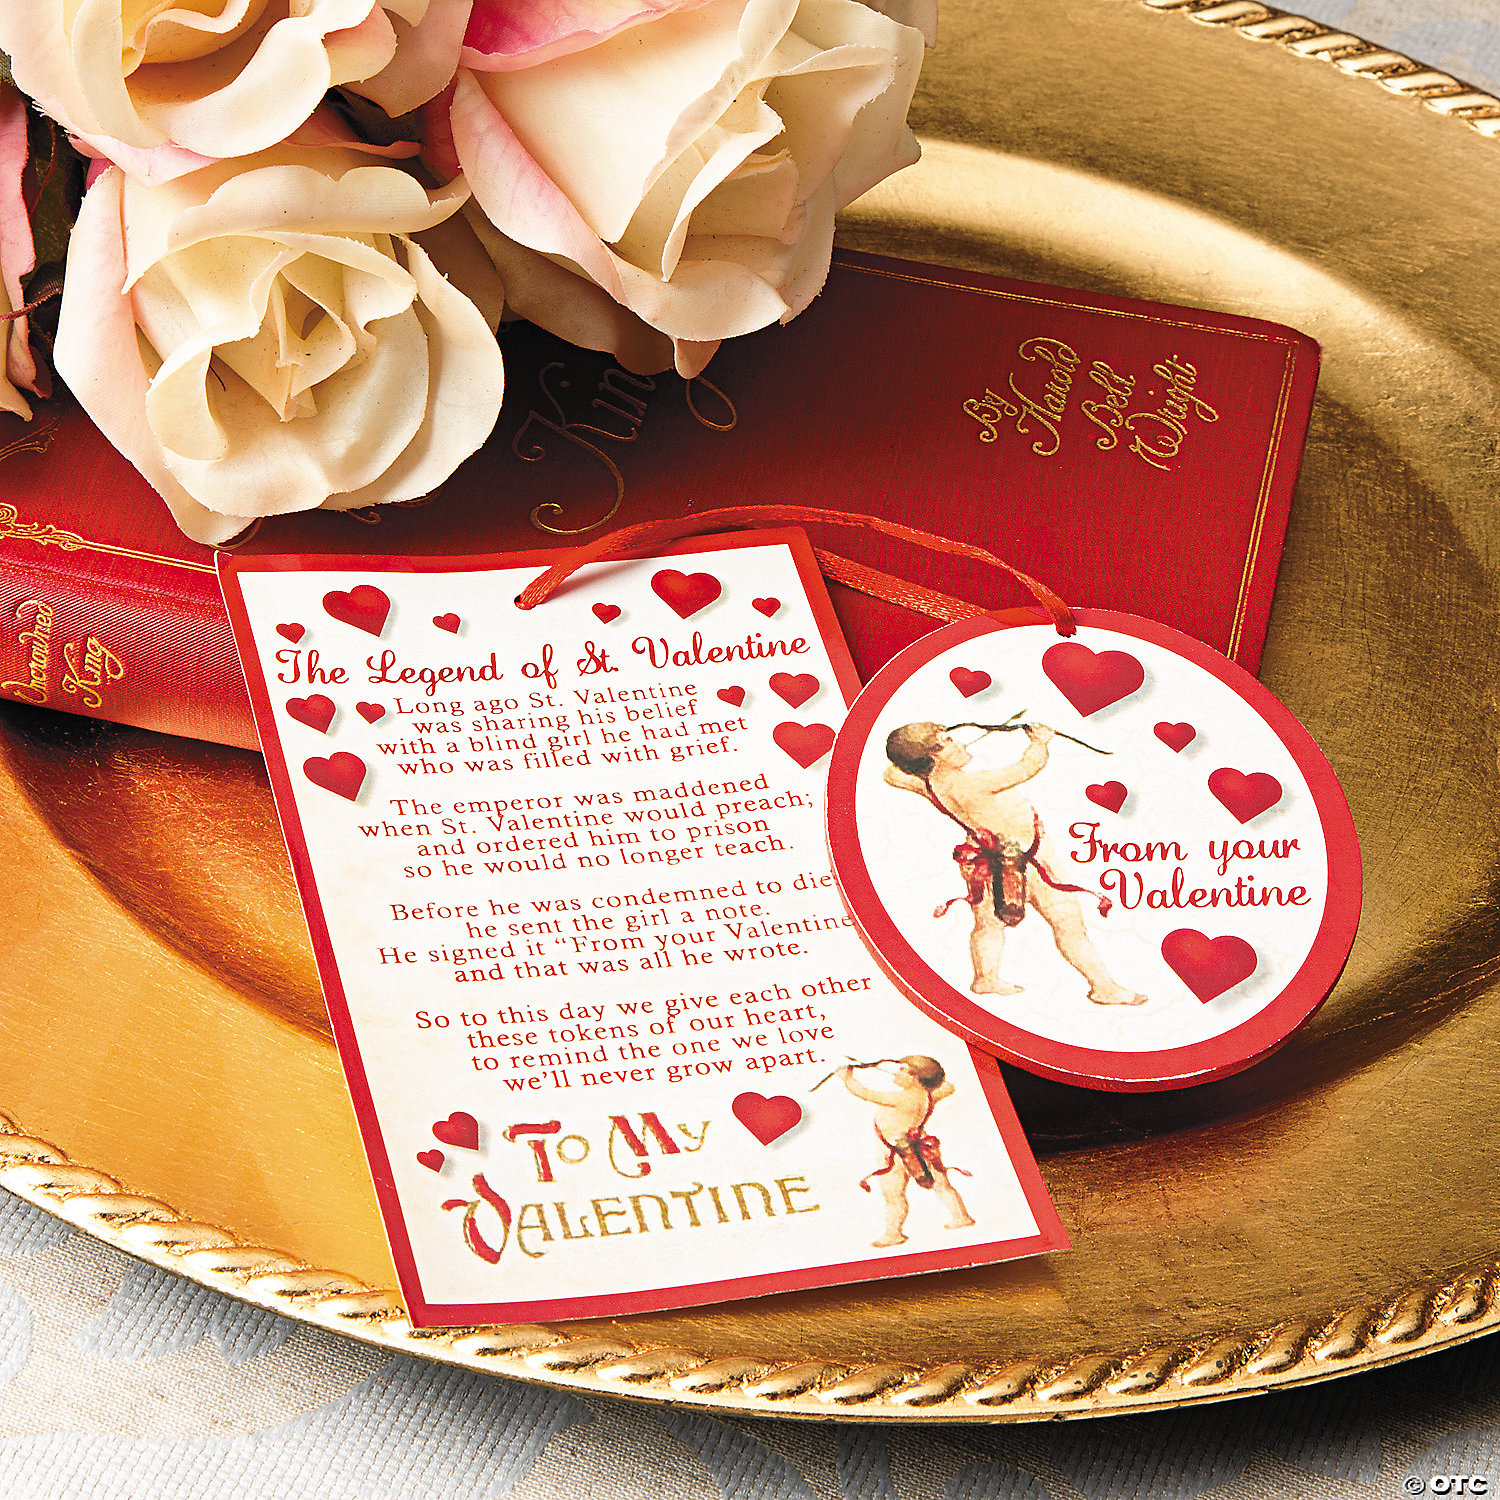 The Legend of St Valentine Ornaments on Cards – St Valentines Cards